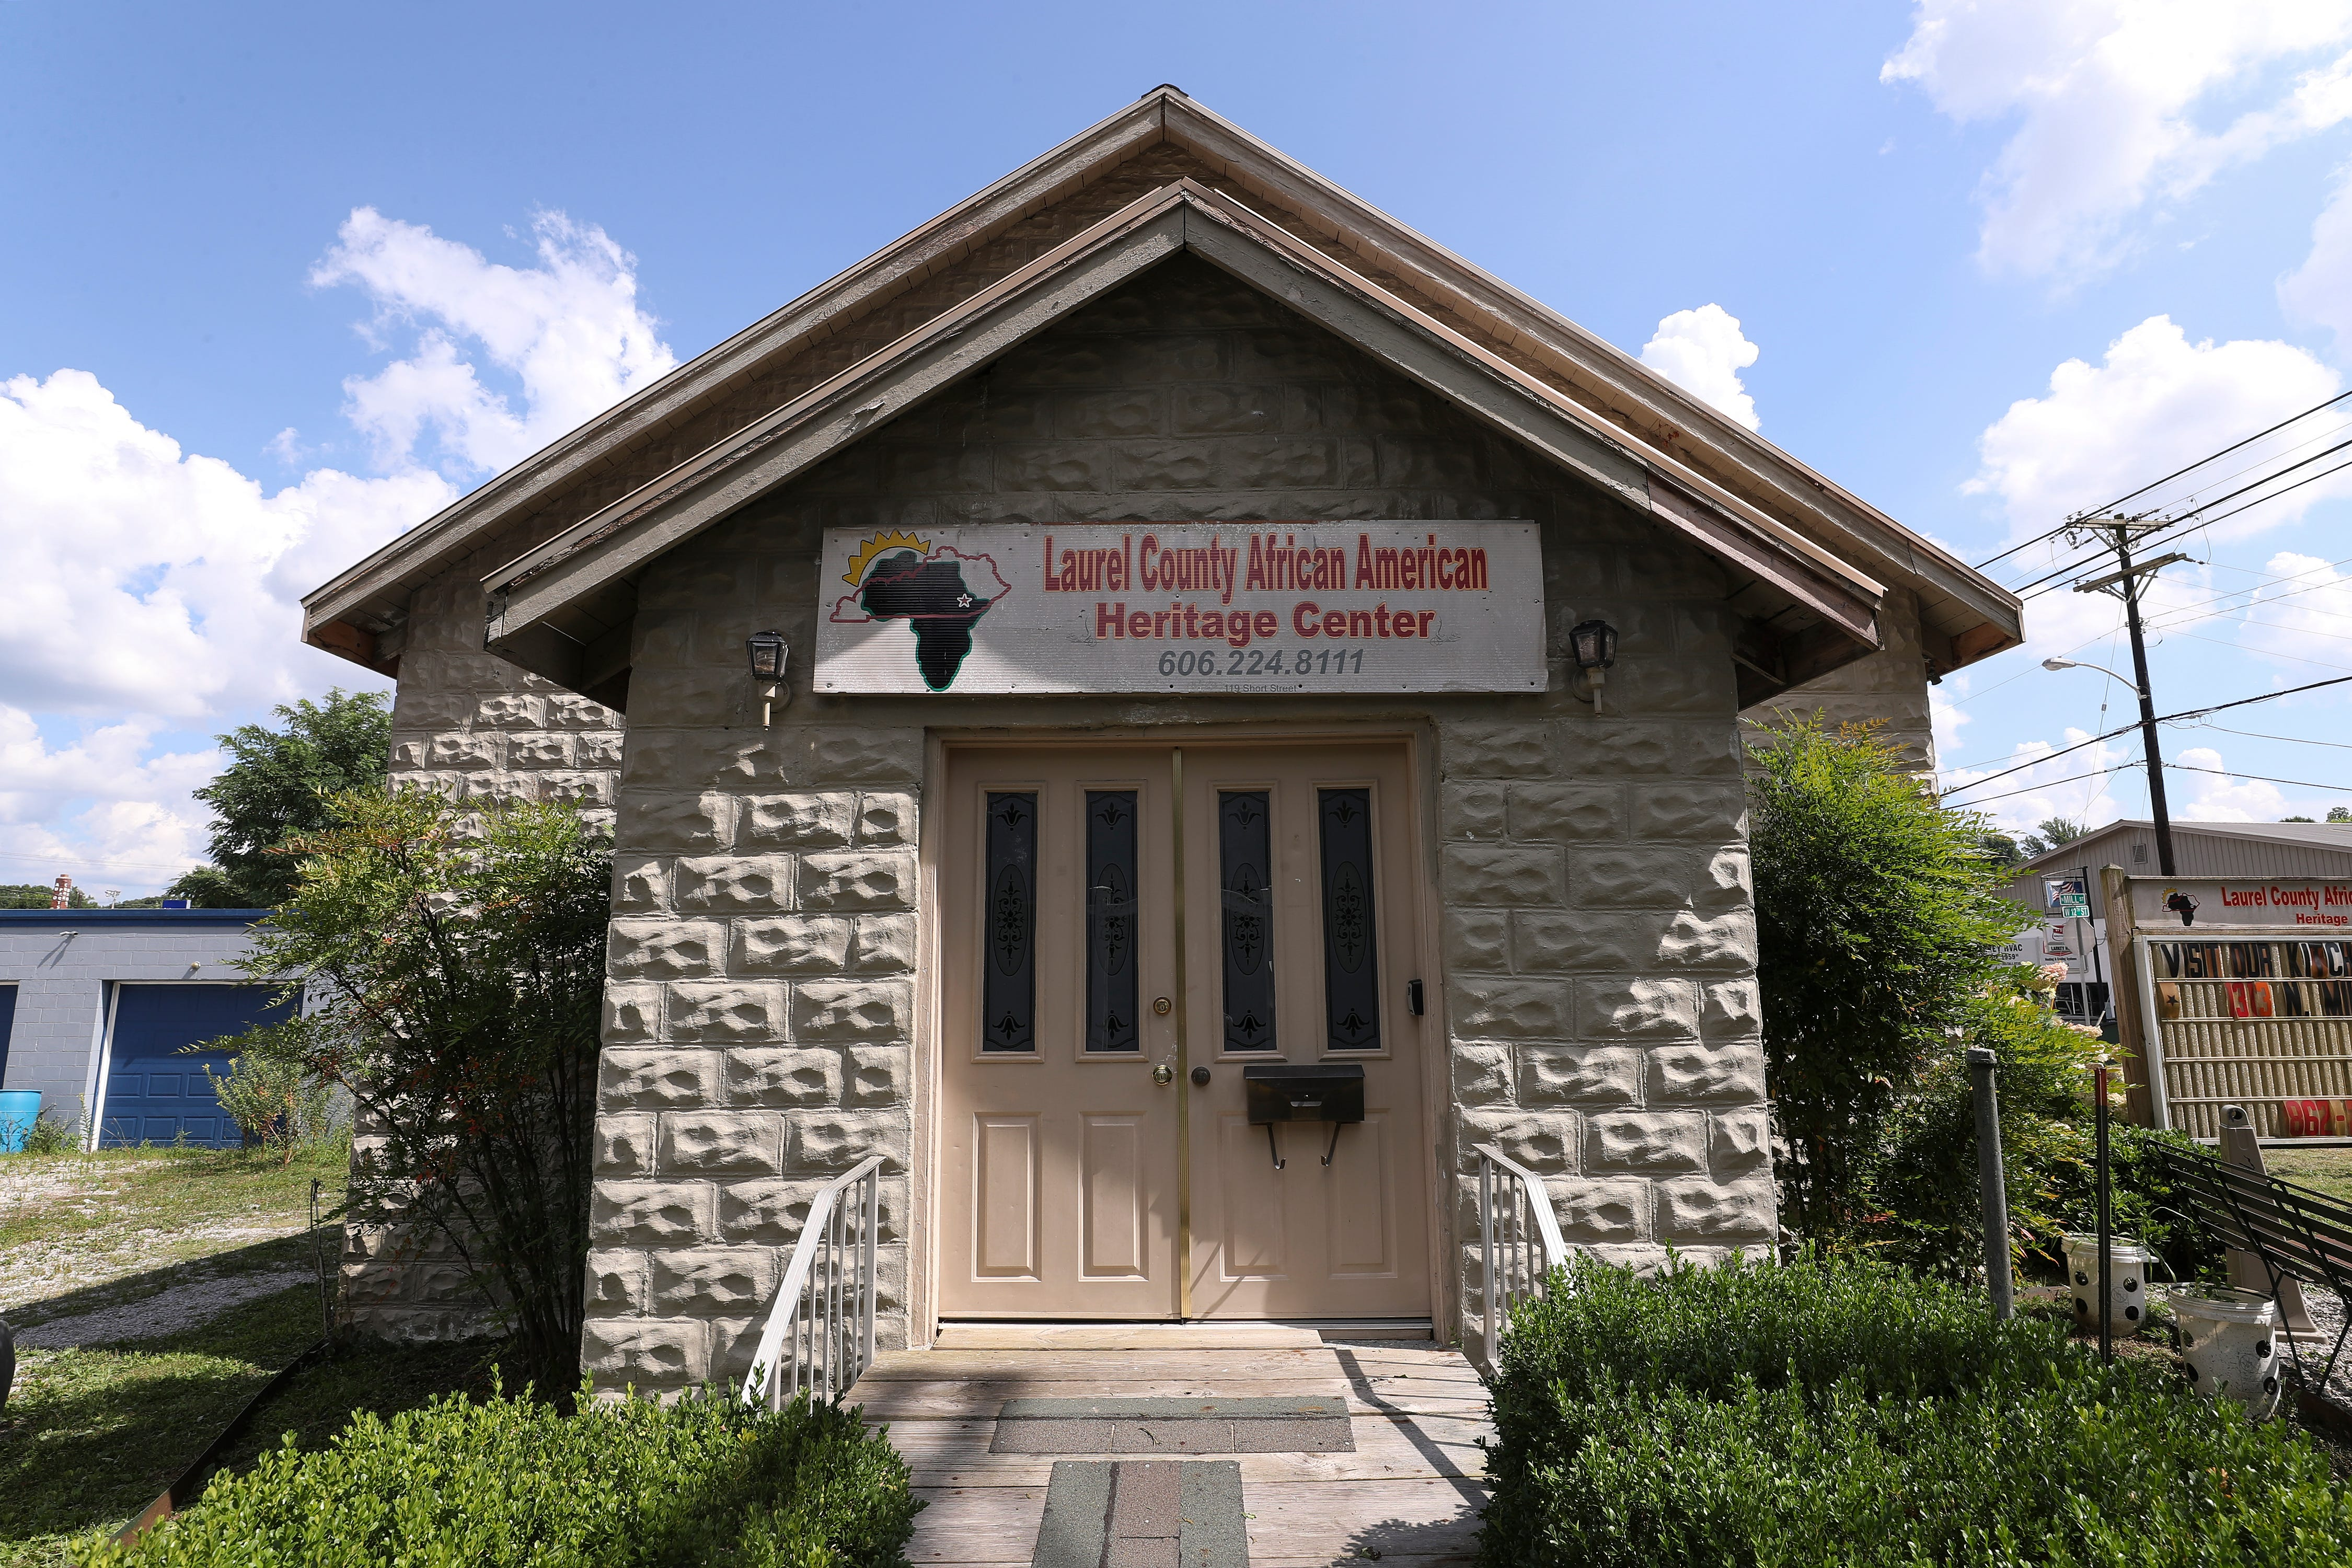 The Laurel County African American Heritage Center in London, Ky. on Aug. 13, 2020